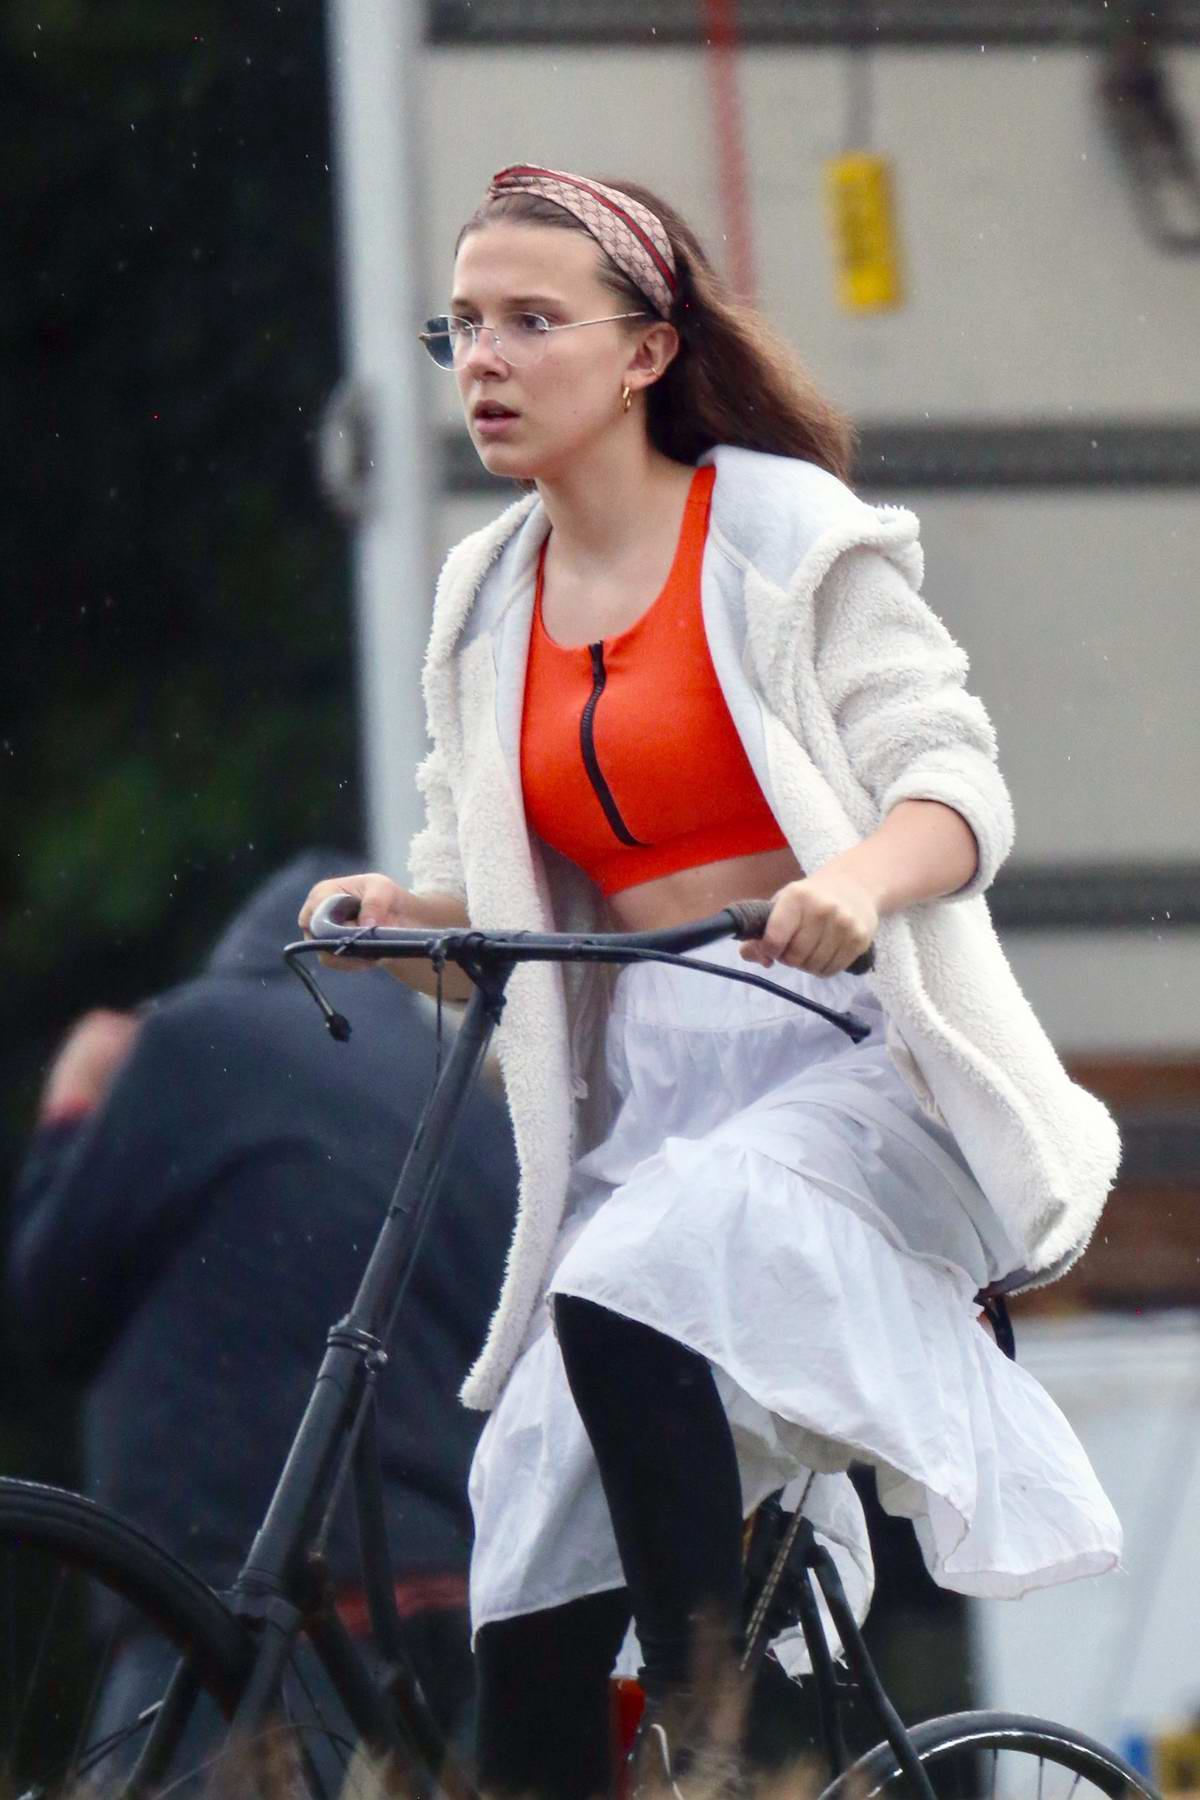 Millie Bobby Brown rides a bicycle on the sets of her new movie 'Enola Holmes' in Buckinghamshire, UK